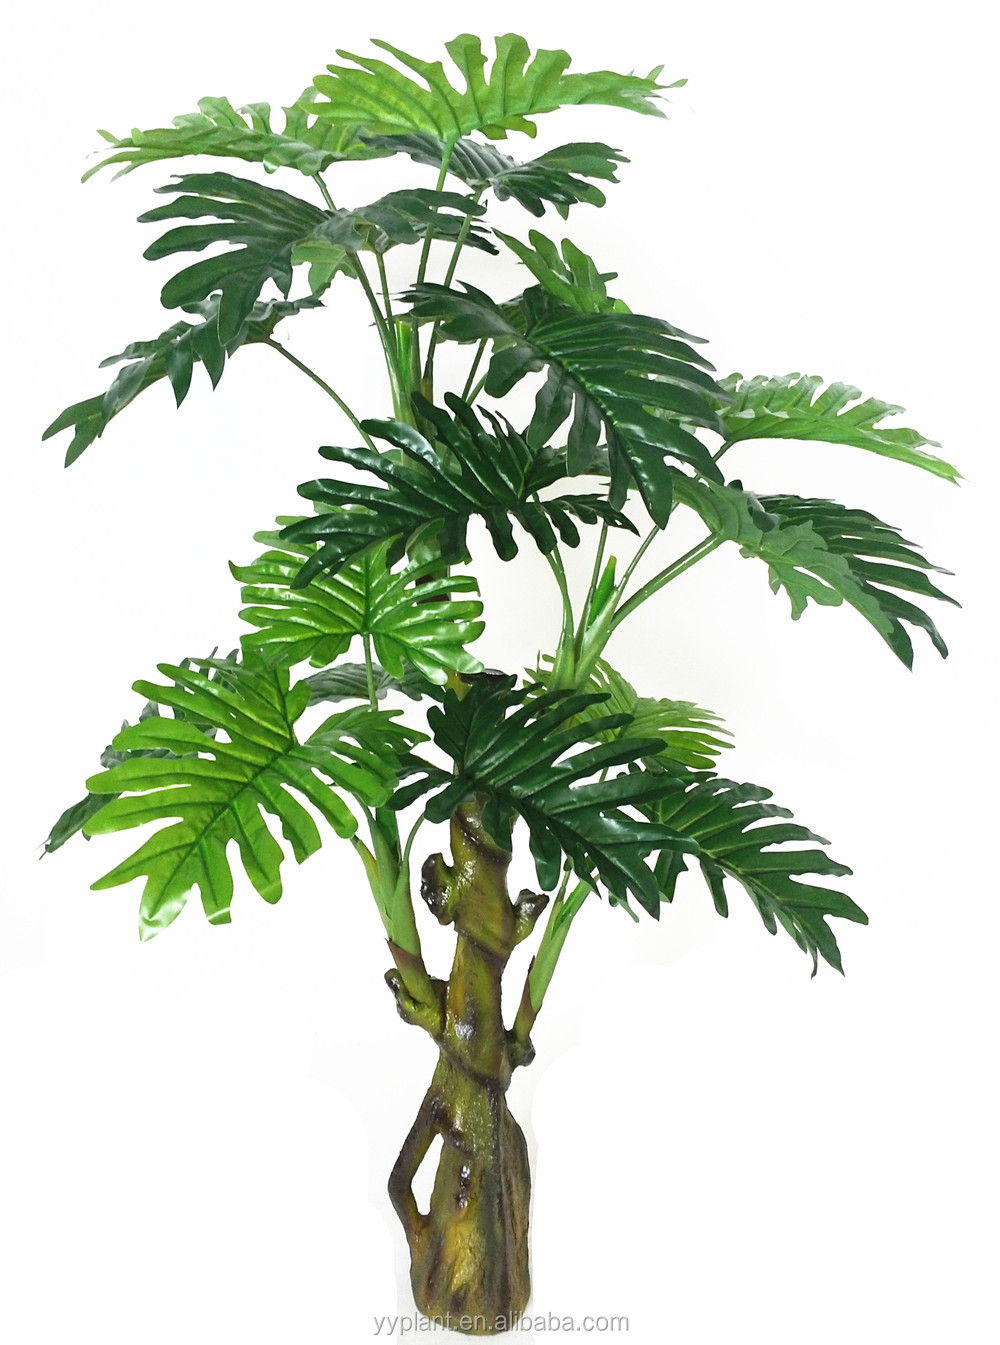 Artificielle plante verte philodendron 110 cm en usine for Solde plante exterieur